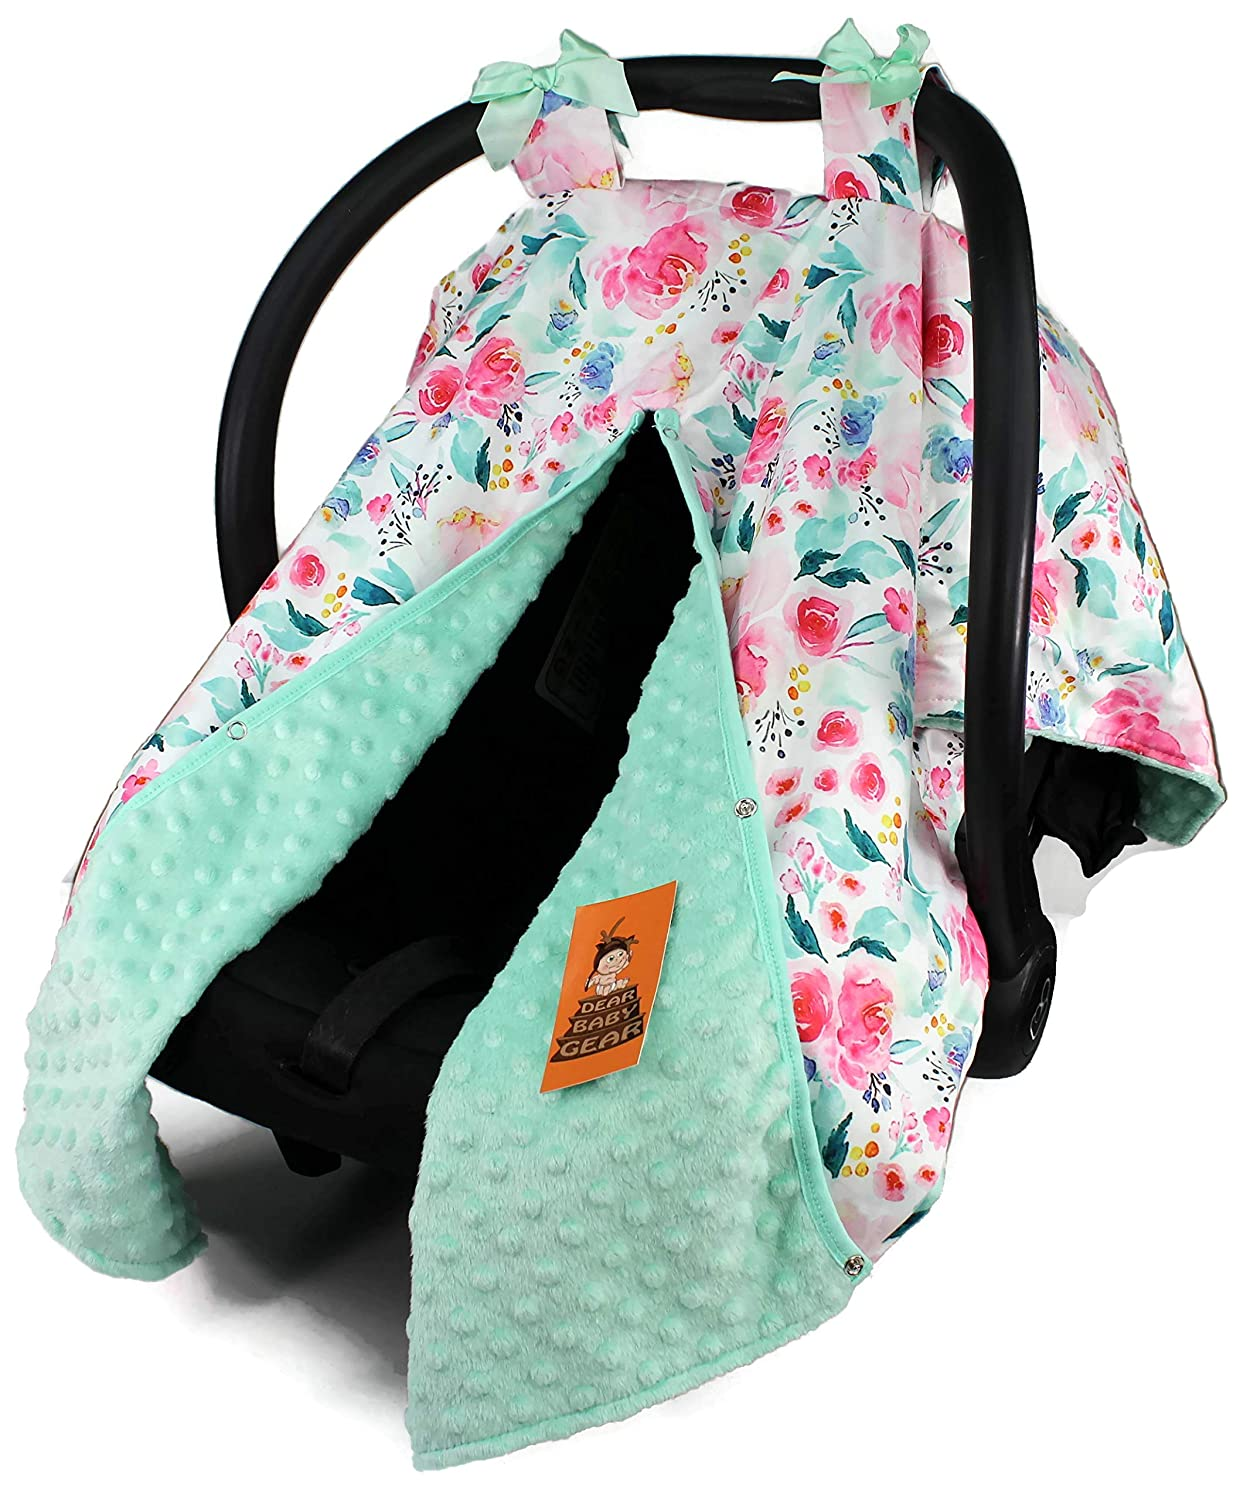 Dear Baby Gear Baby Car Seat Canopy Cover, Floral Watercolor Roses in Shades of Pink, Mint Minky